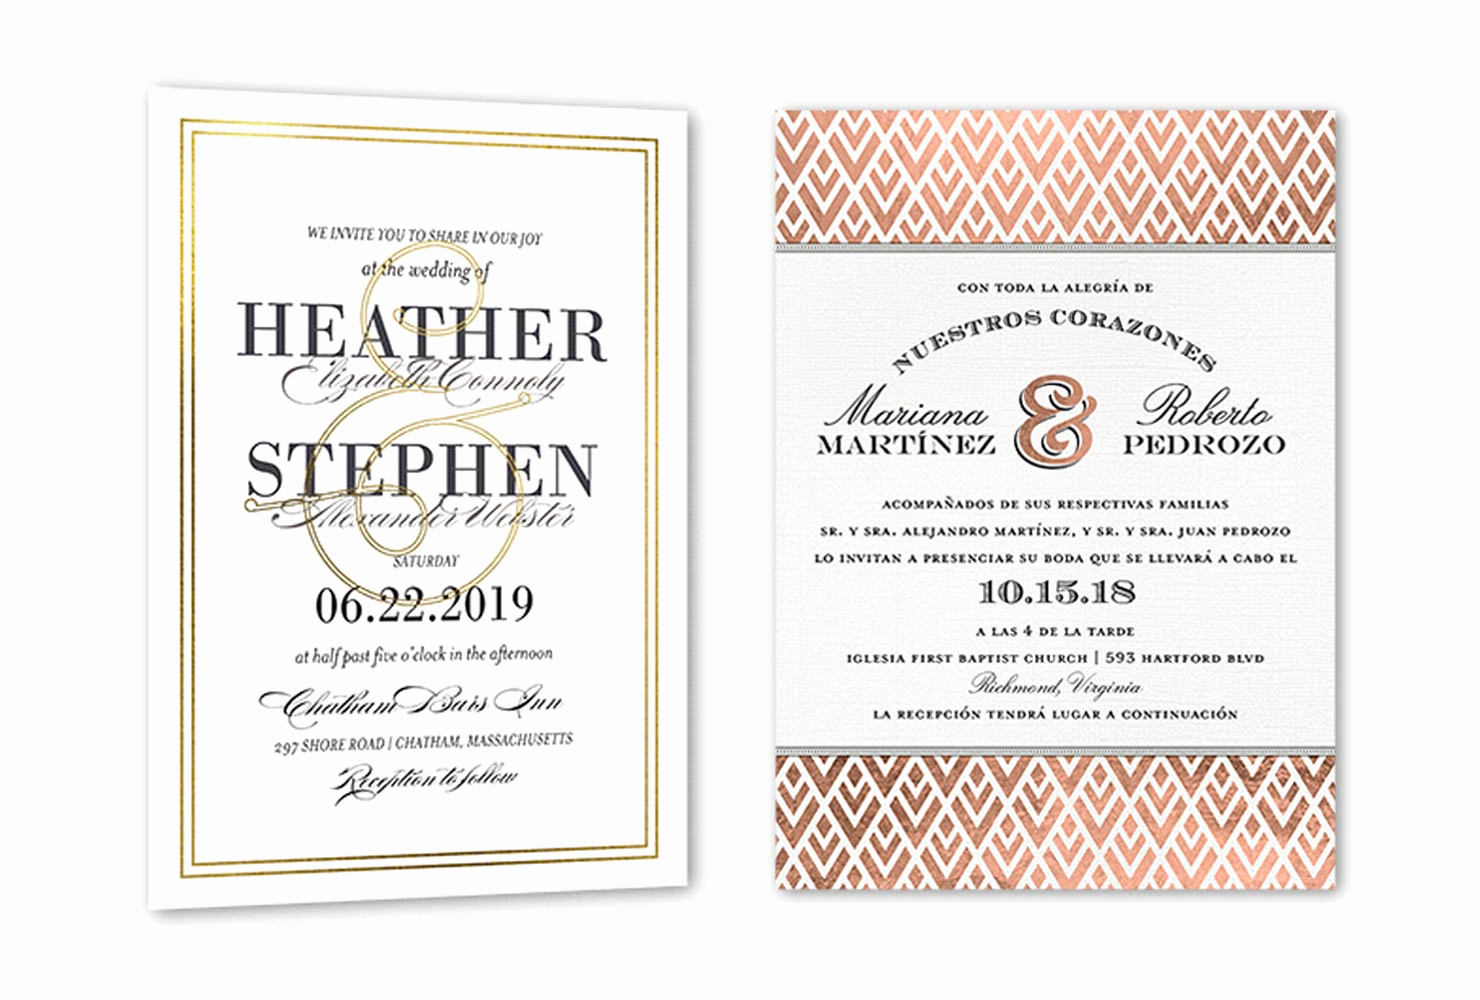 Couples Hosting Wedding Invitation Wording Unique 35 Wedding Invitation Wording Examples 2019